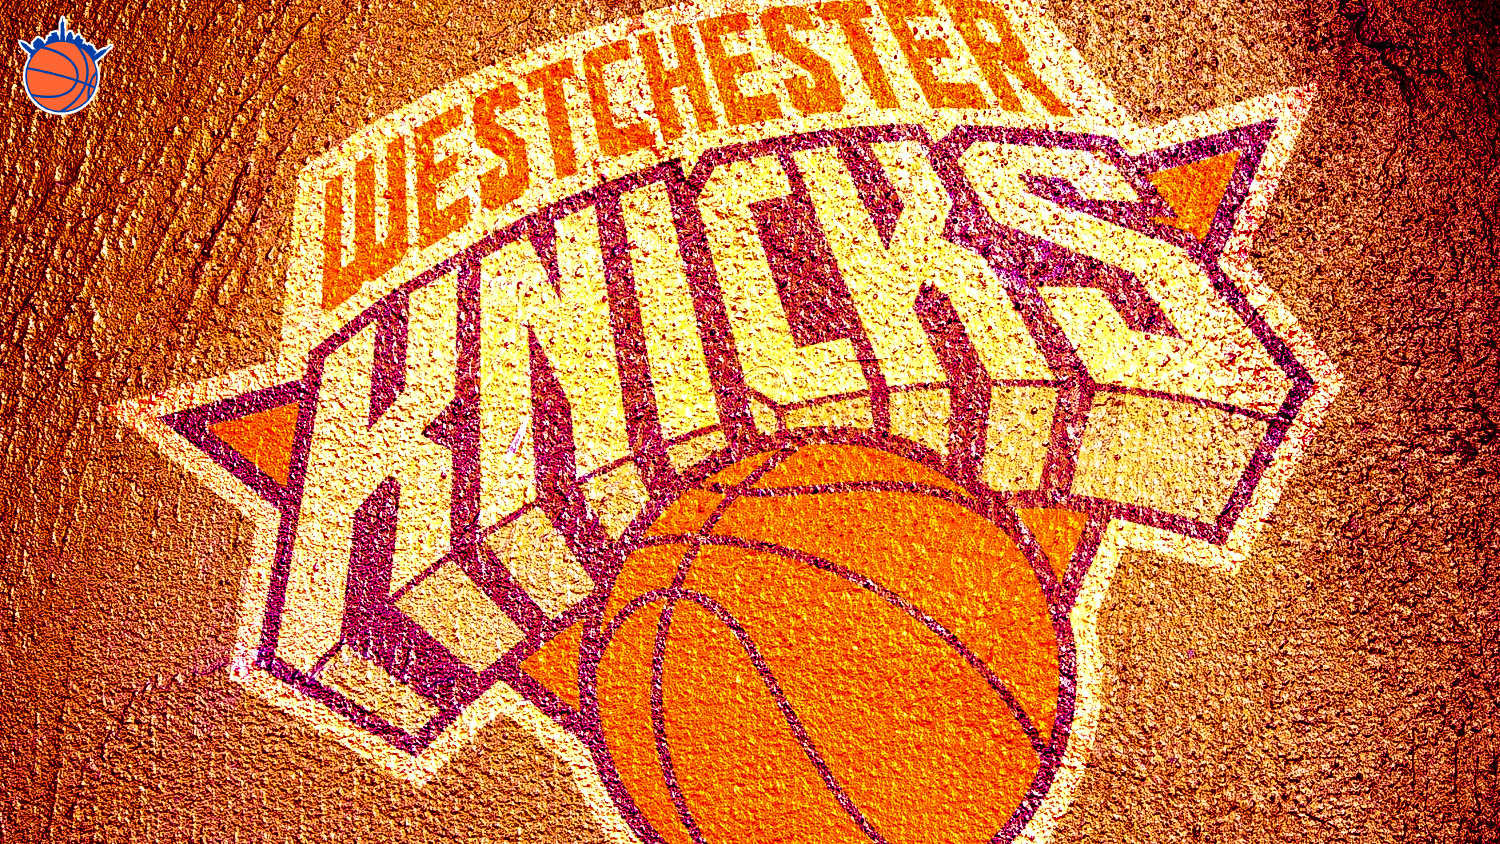 Westchester Knicks '18–'19 Season Preview: Can the DubKnicks Build on Last Year's Regular Season Dominance?